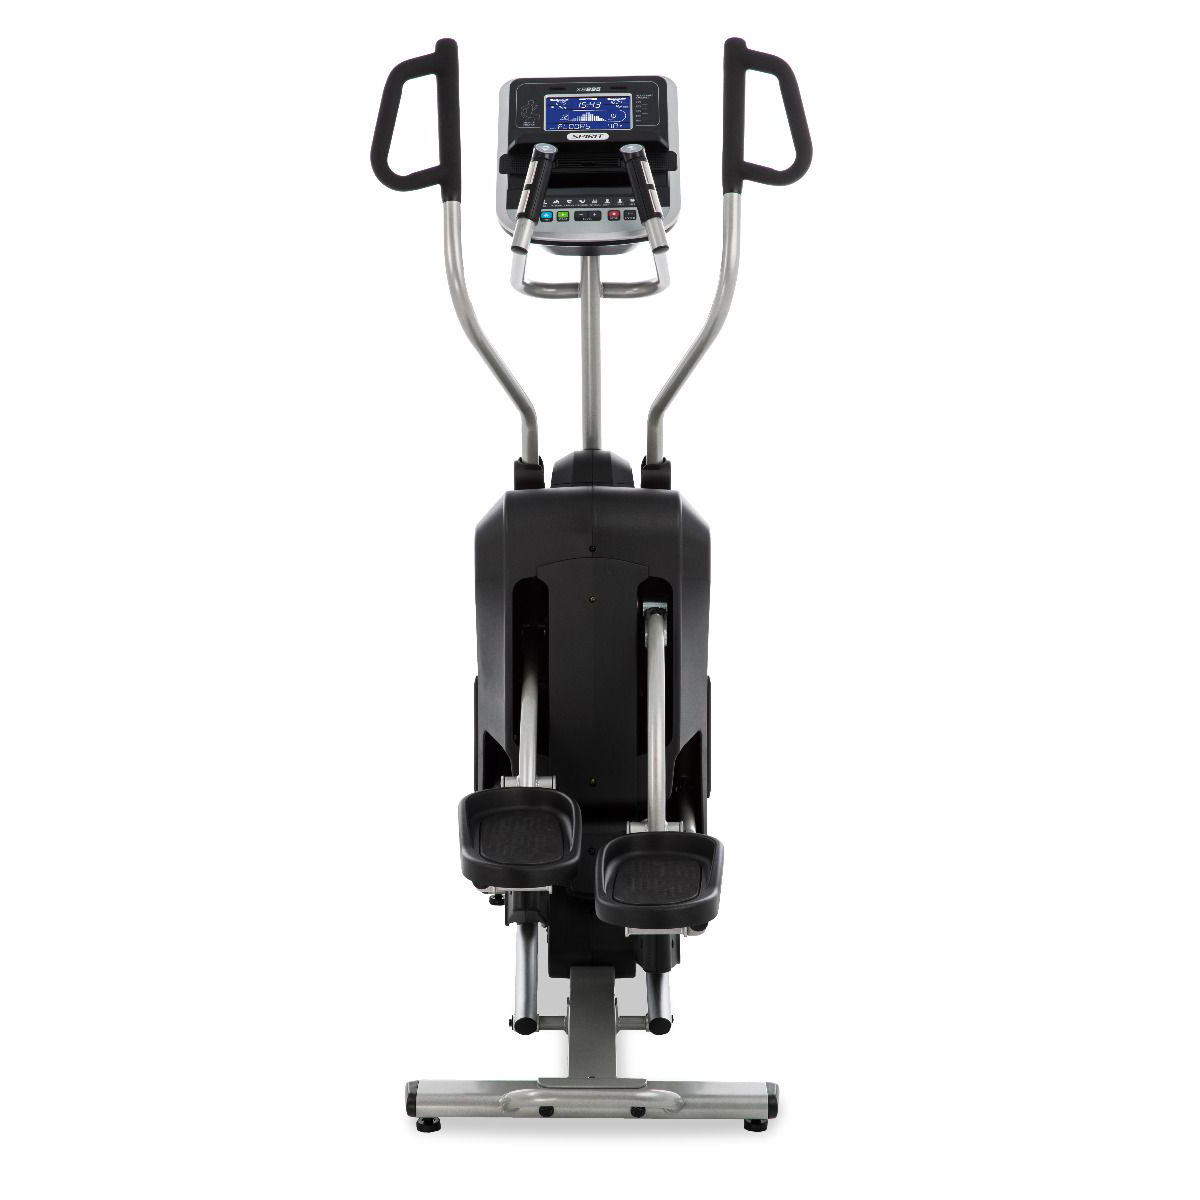 View from back/right of Spirit Fitness XE795 HIIT Trainer Trainer featuring a female model exercising while wearing a black sports bra and black shorts.